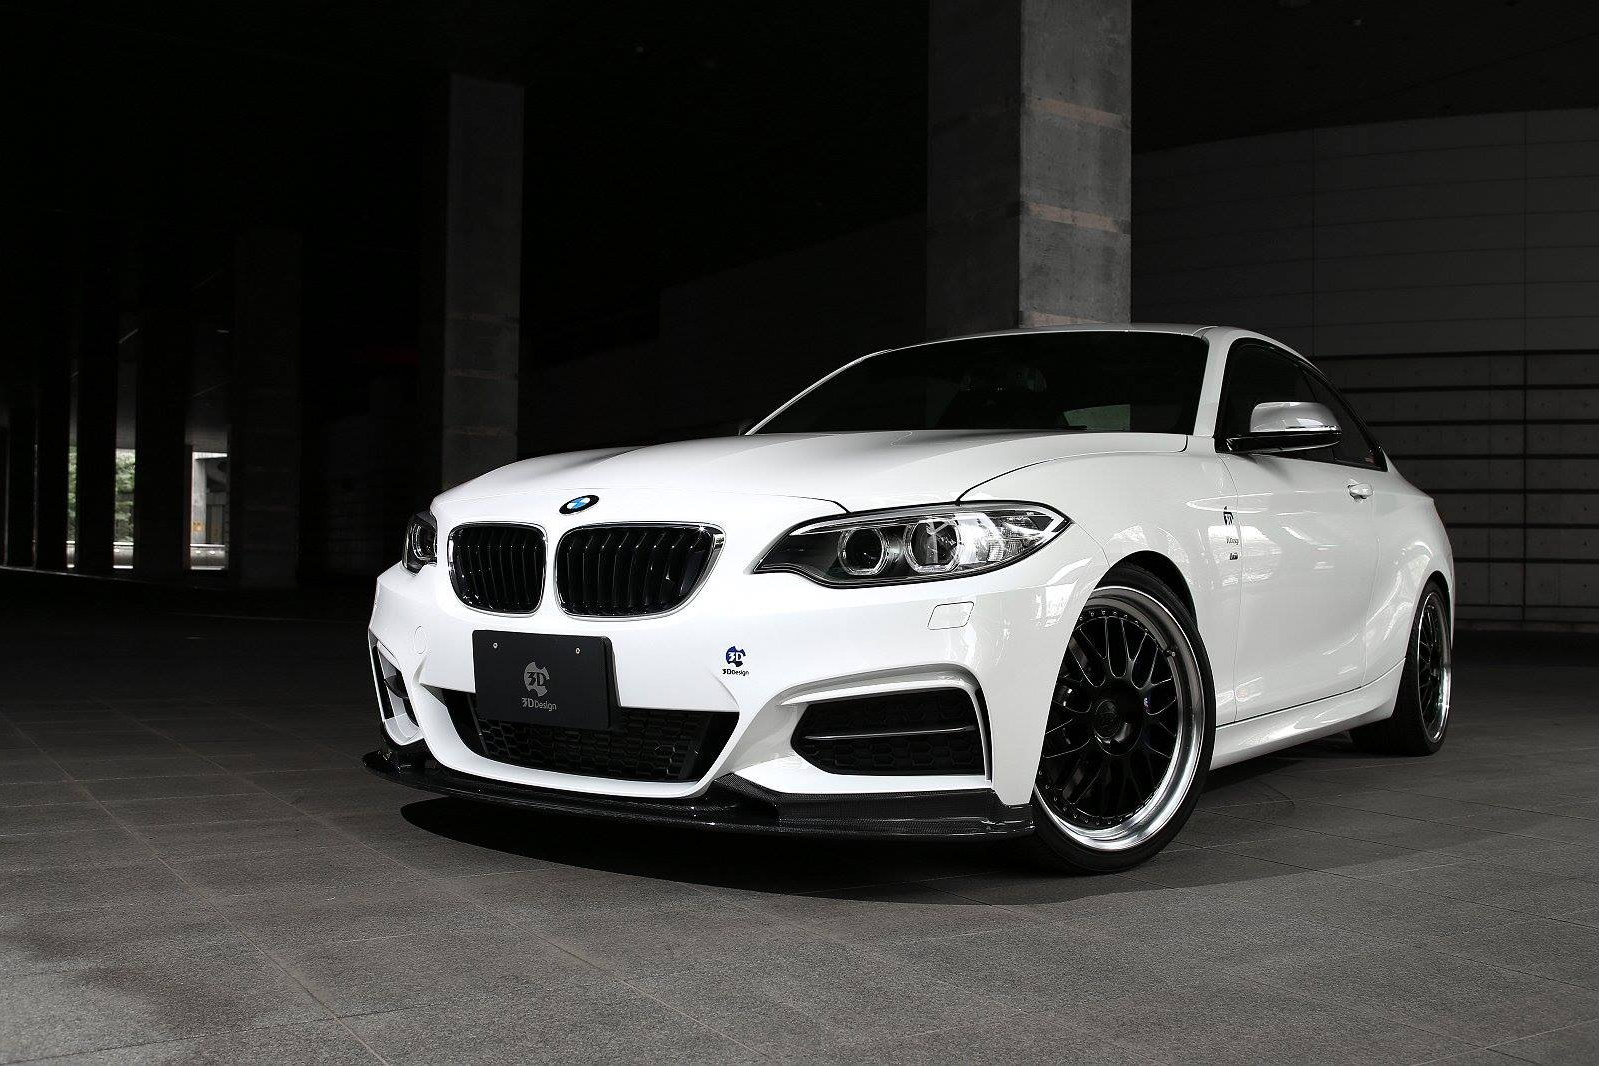 photograph about Bmw Coupons Printable named Bmw m235i pcp discounts : Coupon codes dm ausdrucken